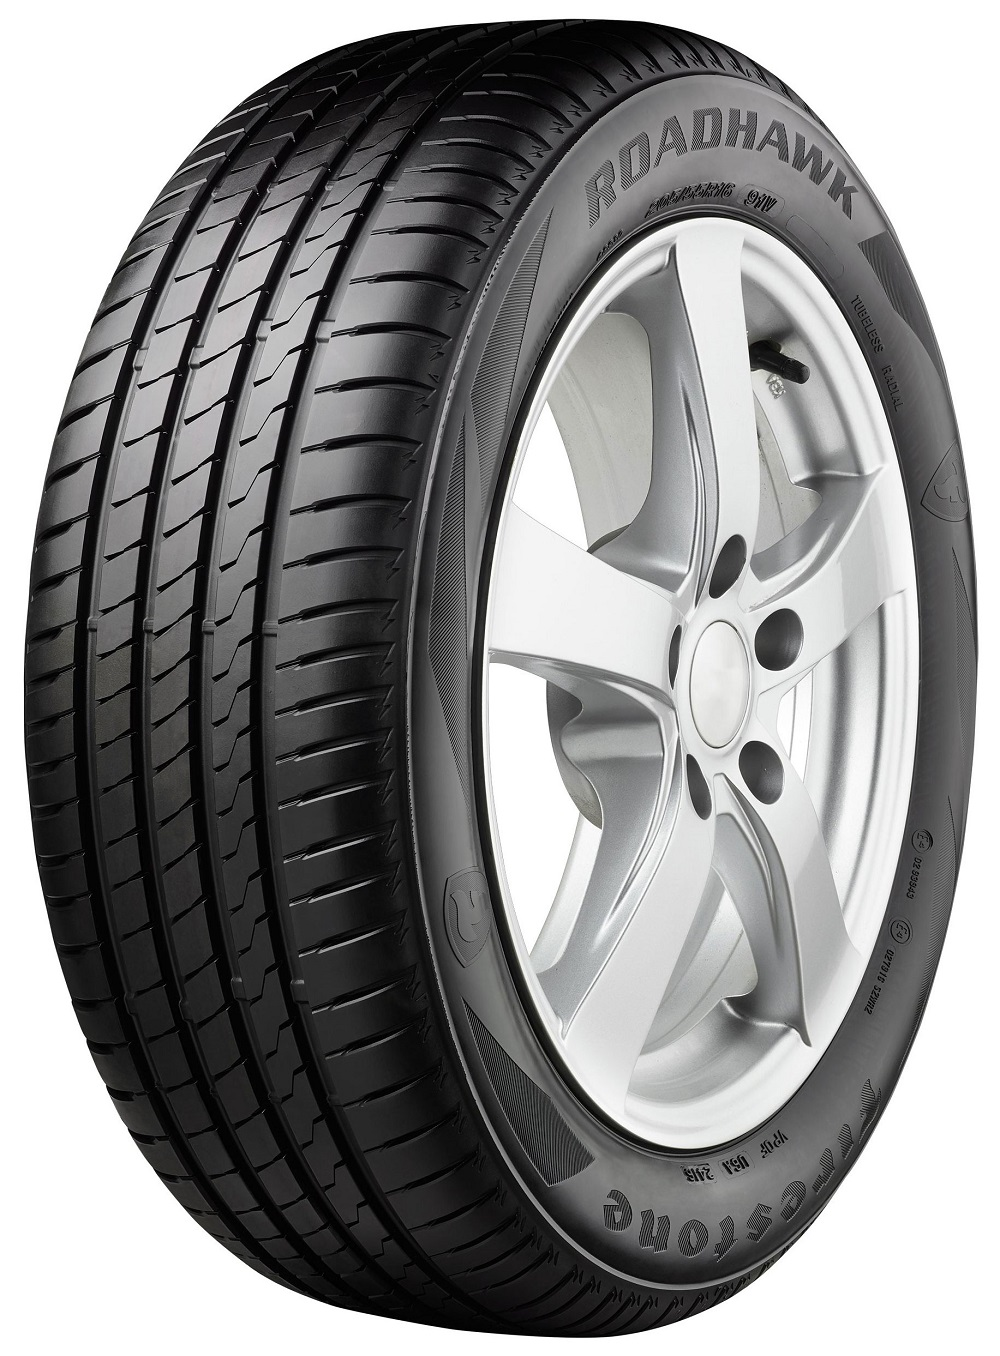 Anvelopa vara FIRESTONE ROADHAWK 185/60 R15 84H